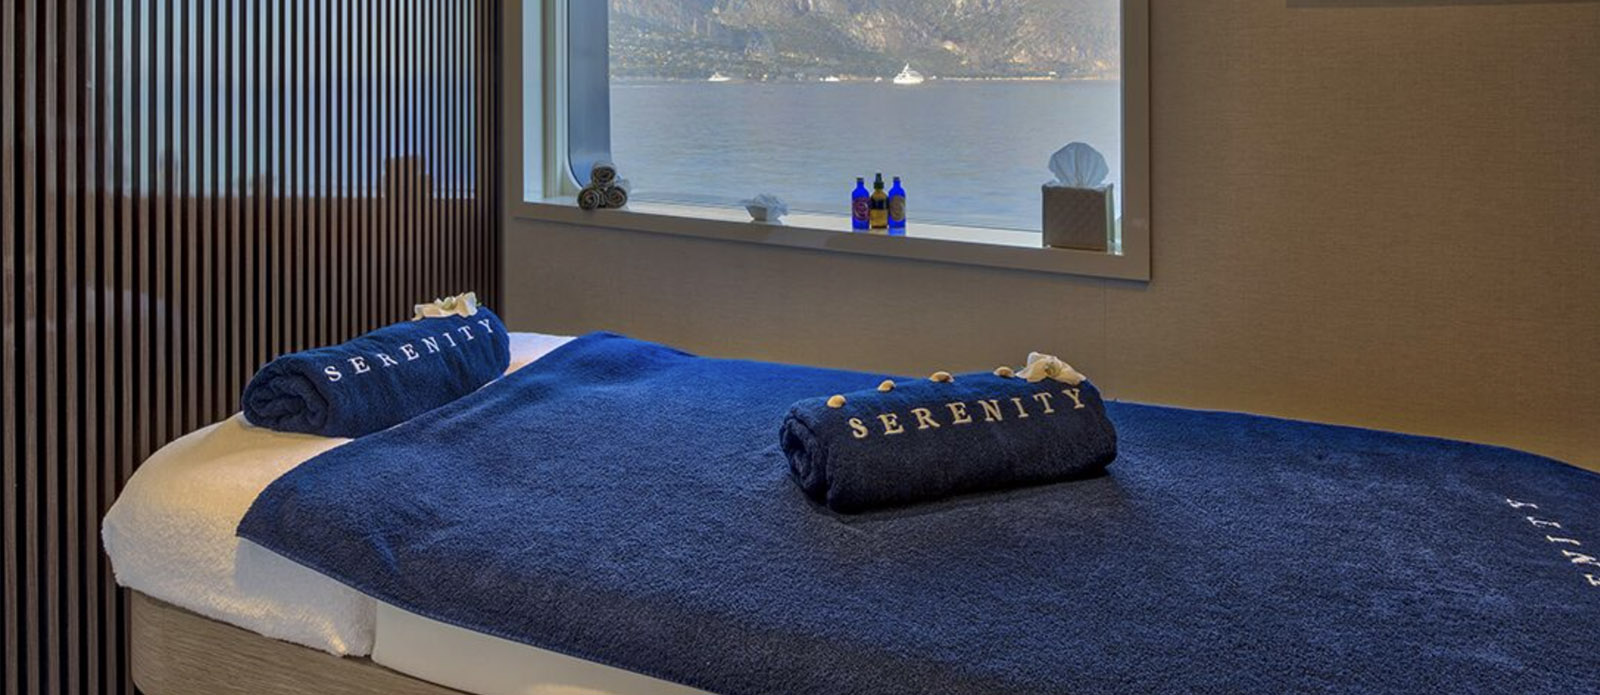 Serenity - Masseuse Room